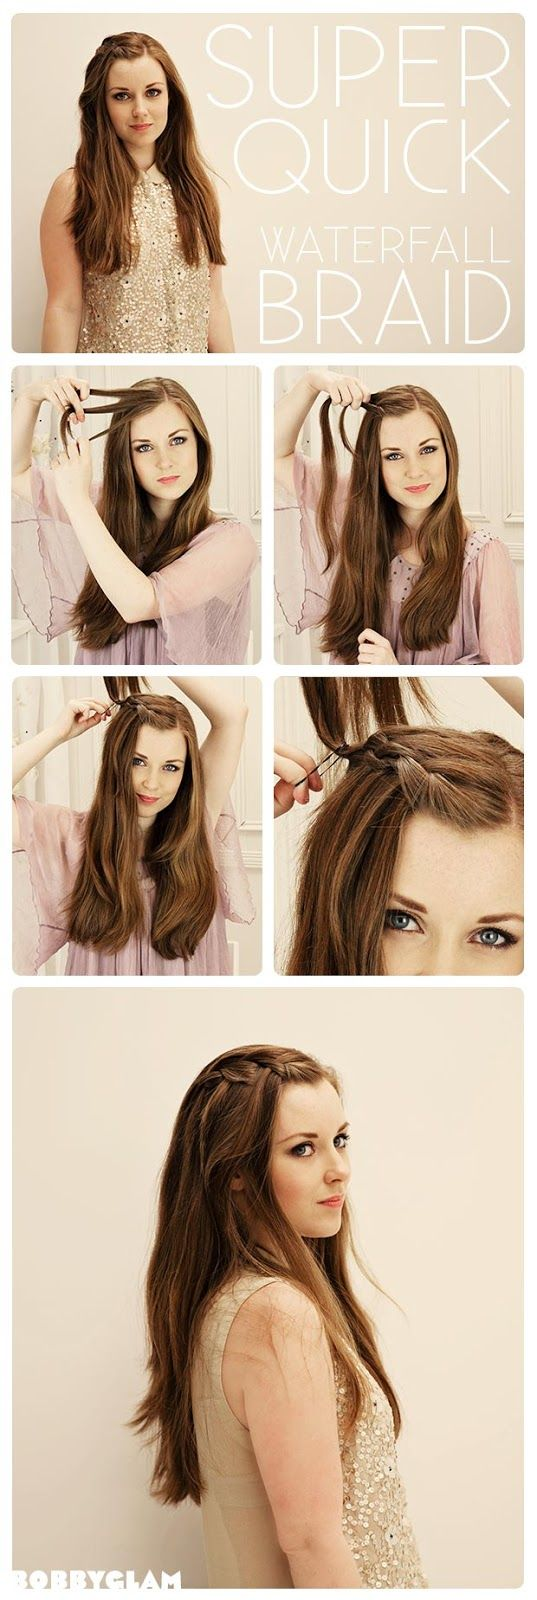 Super Quick Waterfall Braid